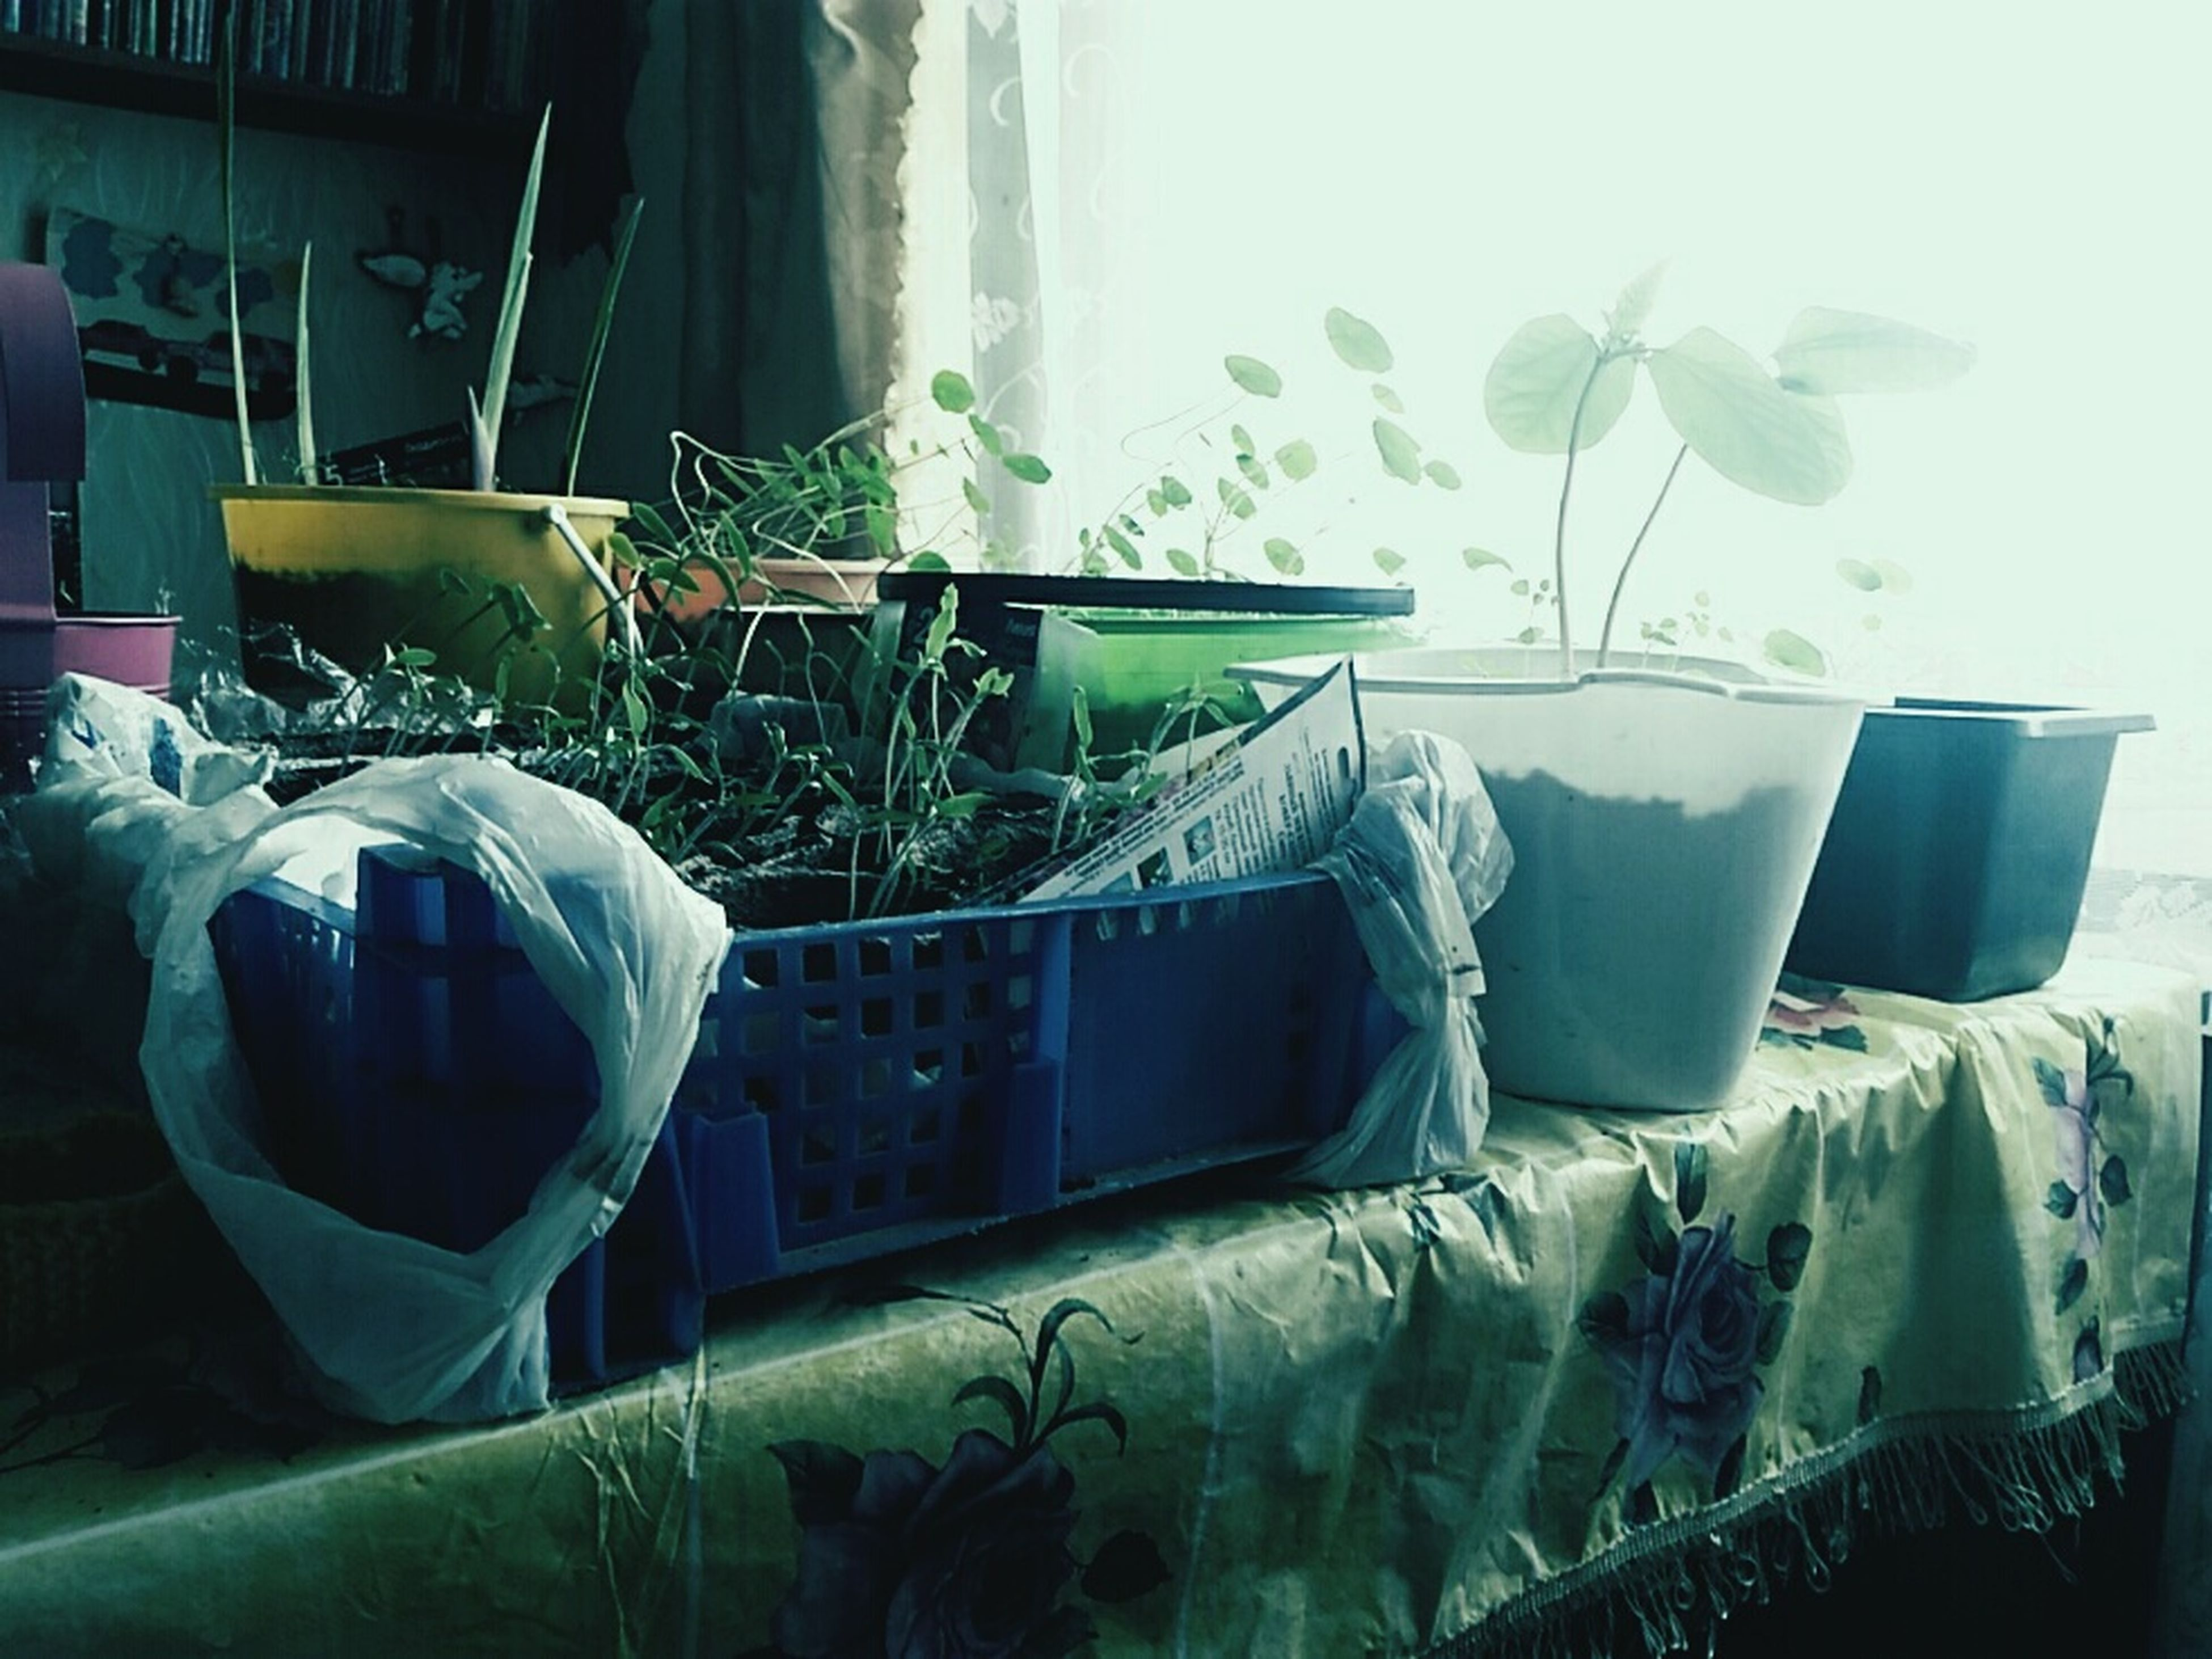 indoors, plant, no people, home interior, leaf, day, bedroom, nature, close-up